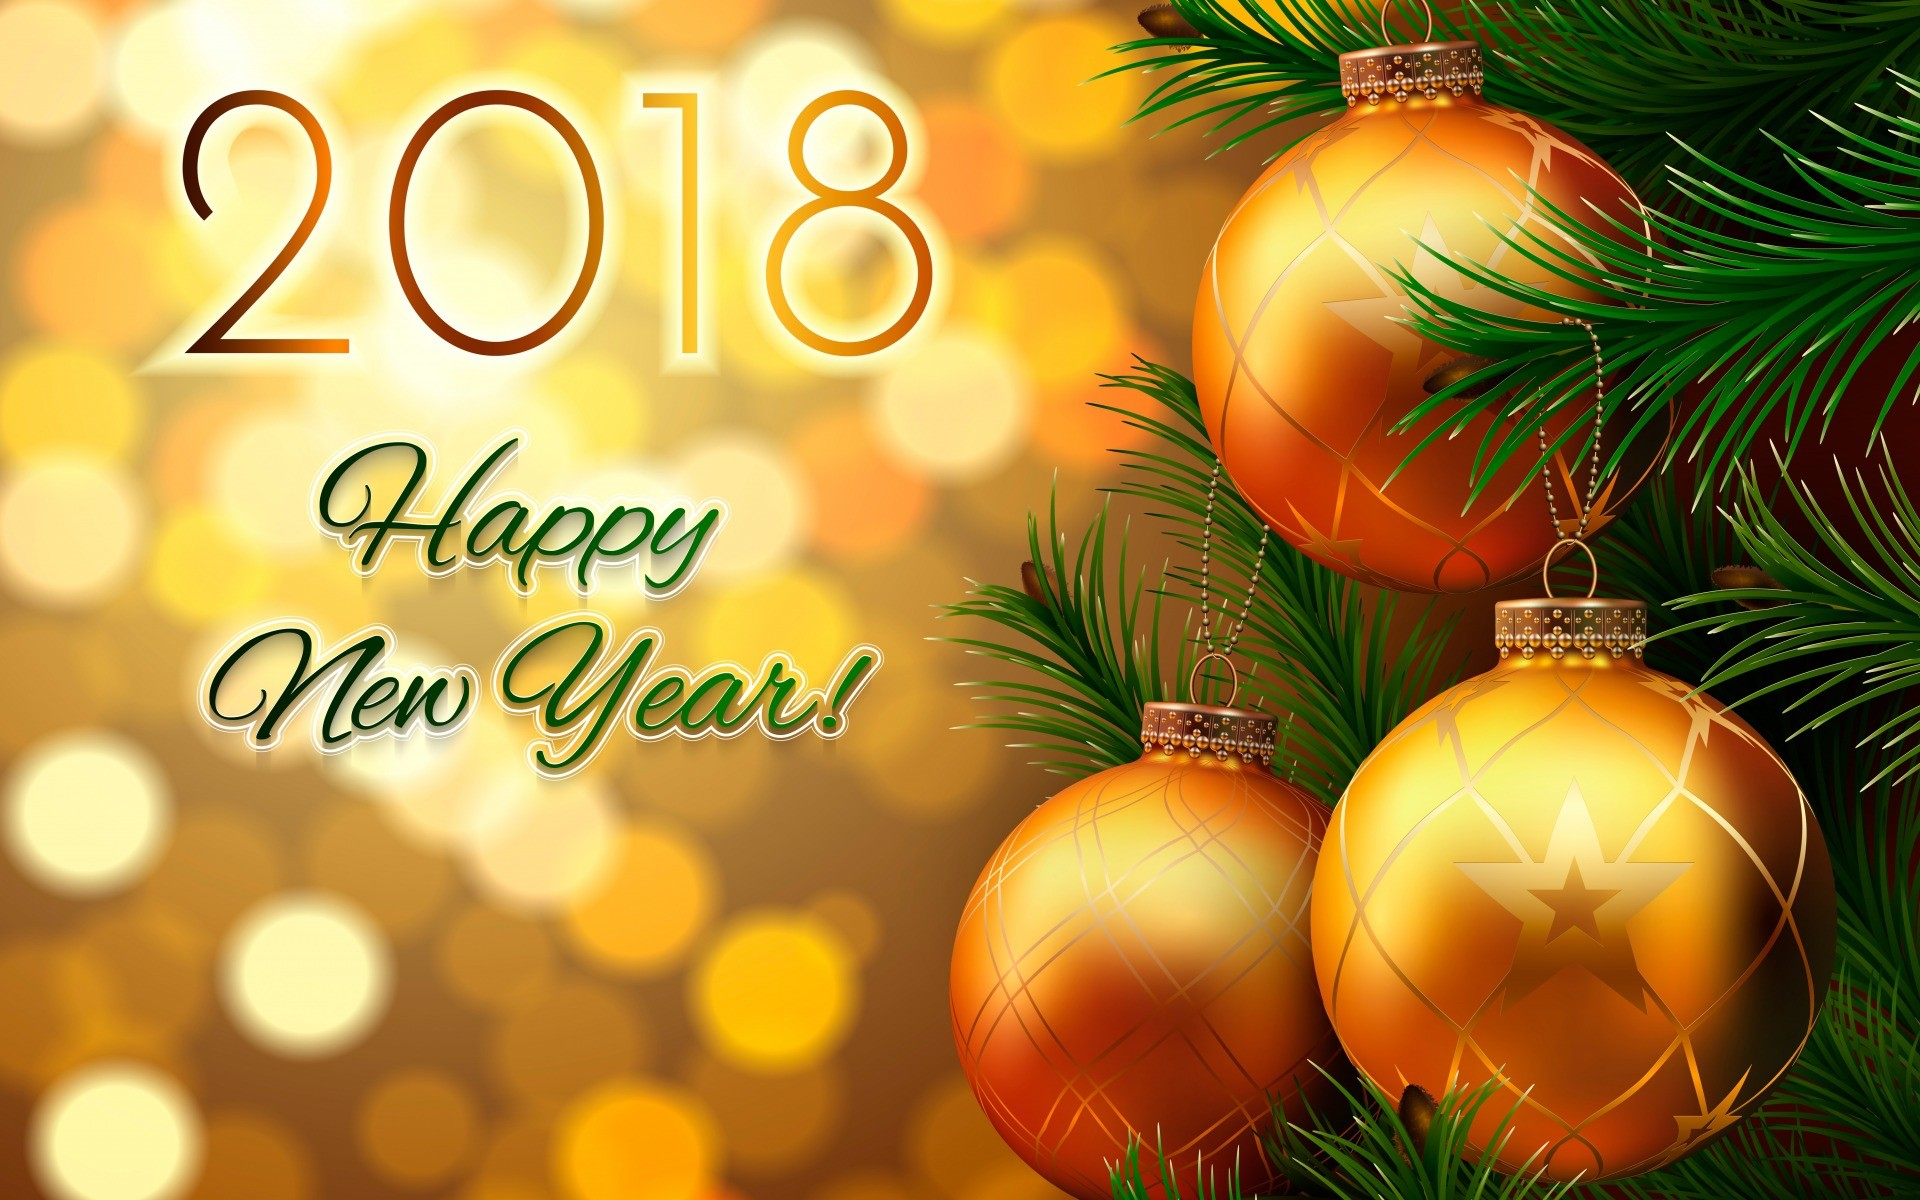 1920x1200 Christmas Ball And Happy New Year 2018 Wallpaper 27518